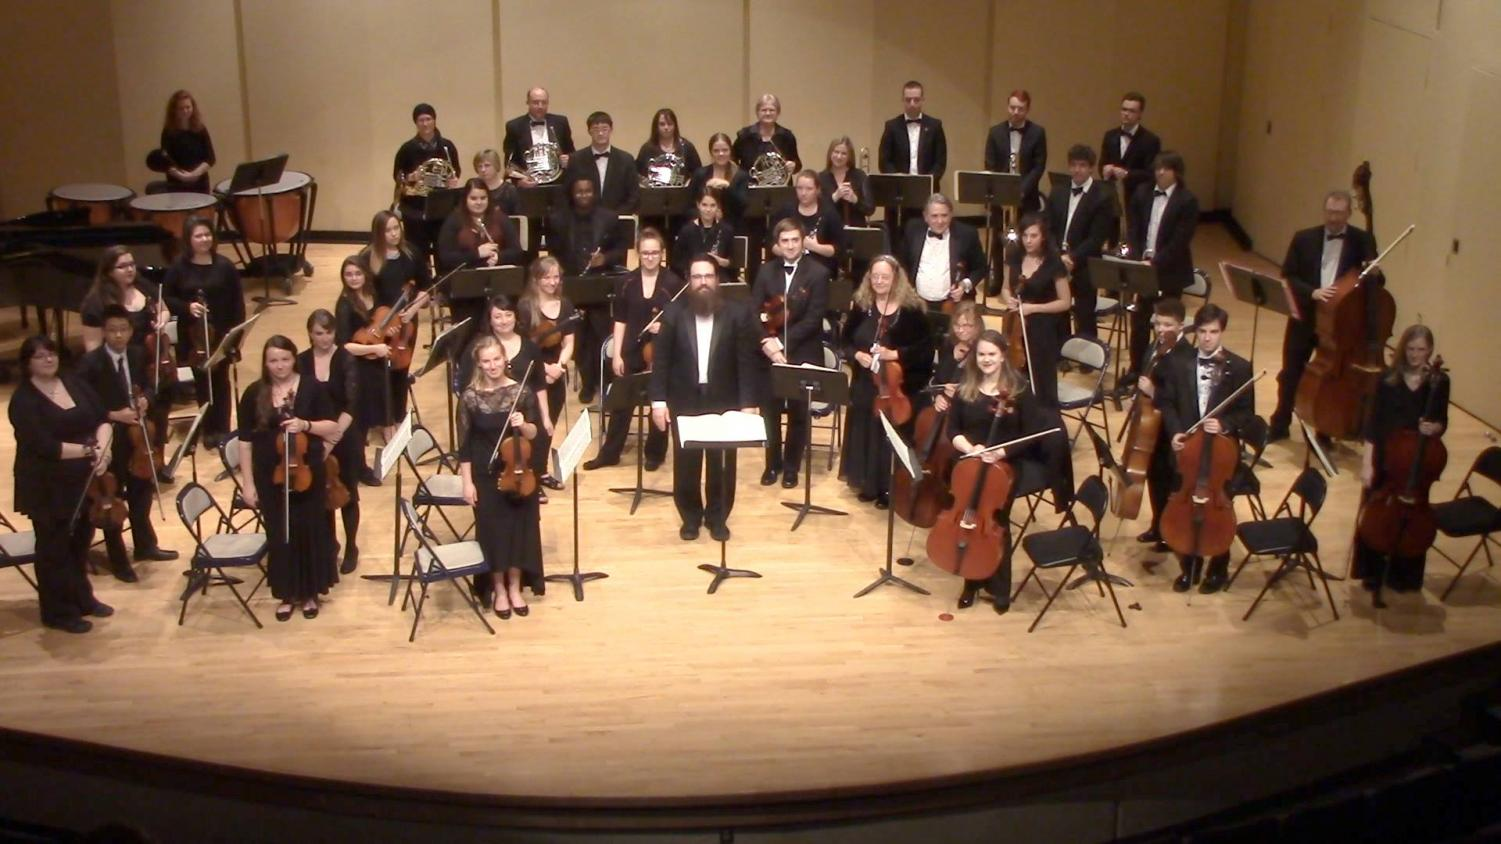 The Mercyhurst Civic Orchestra had a successful performance at Walker Recital Hall on Oct. 29.